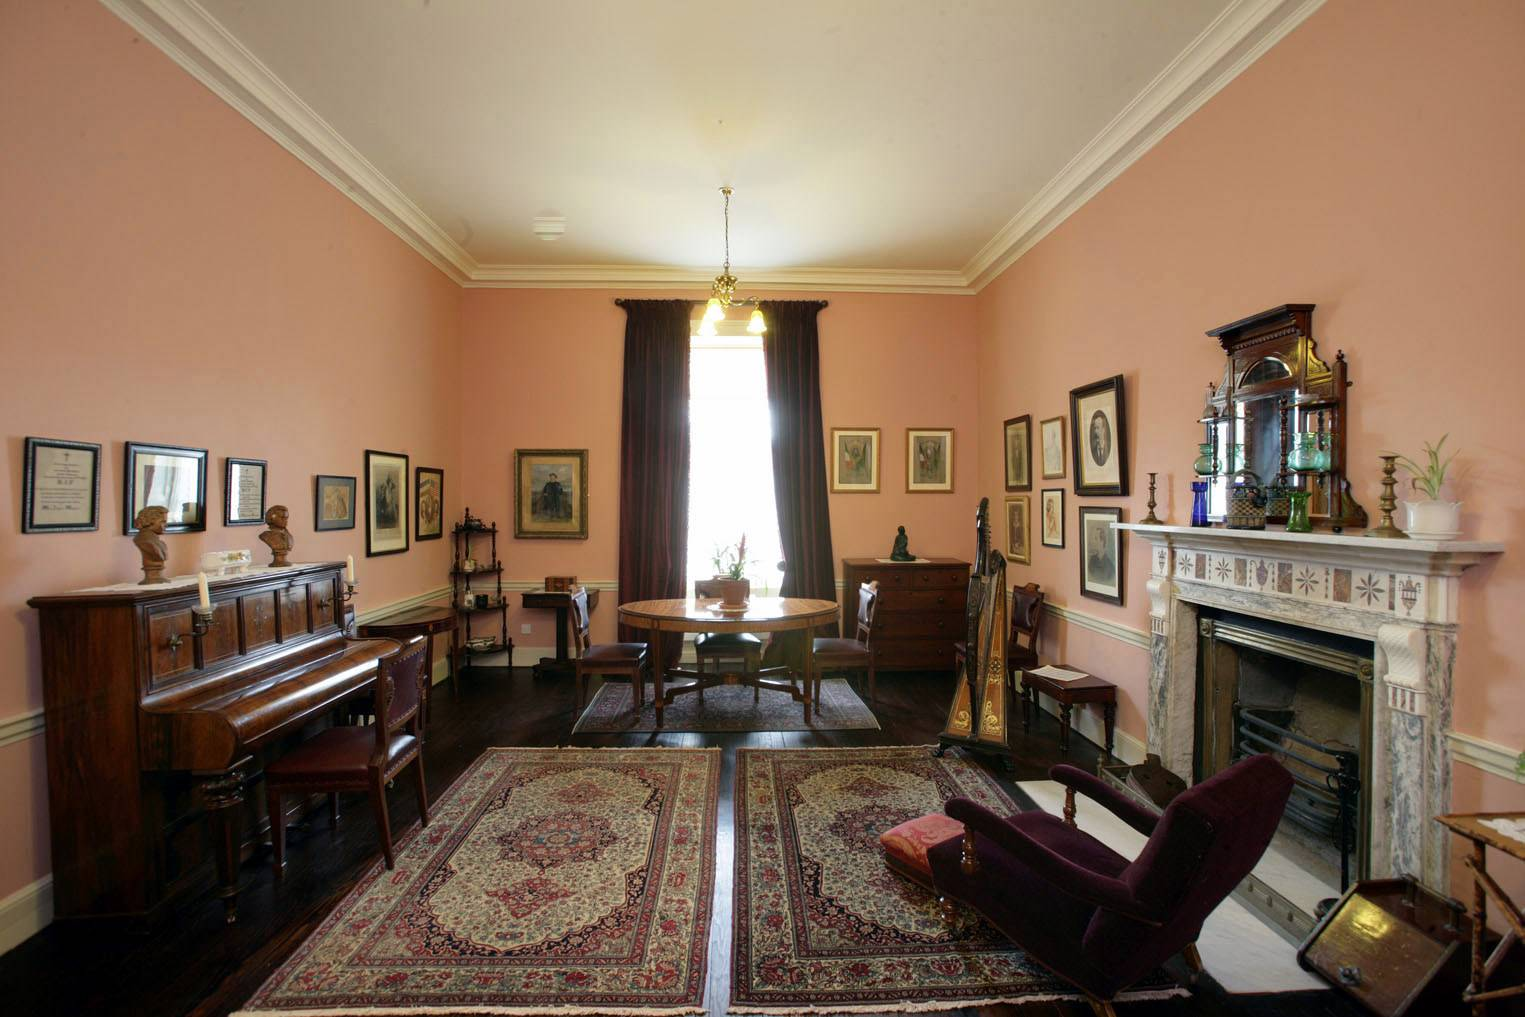 The Sitting Room. ©National Monuments Service Dept of Arts, Heritage and the Gaeltacht.